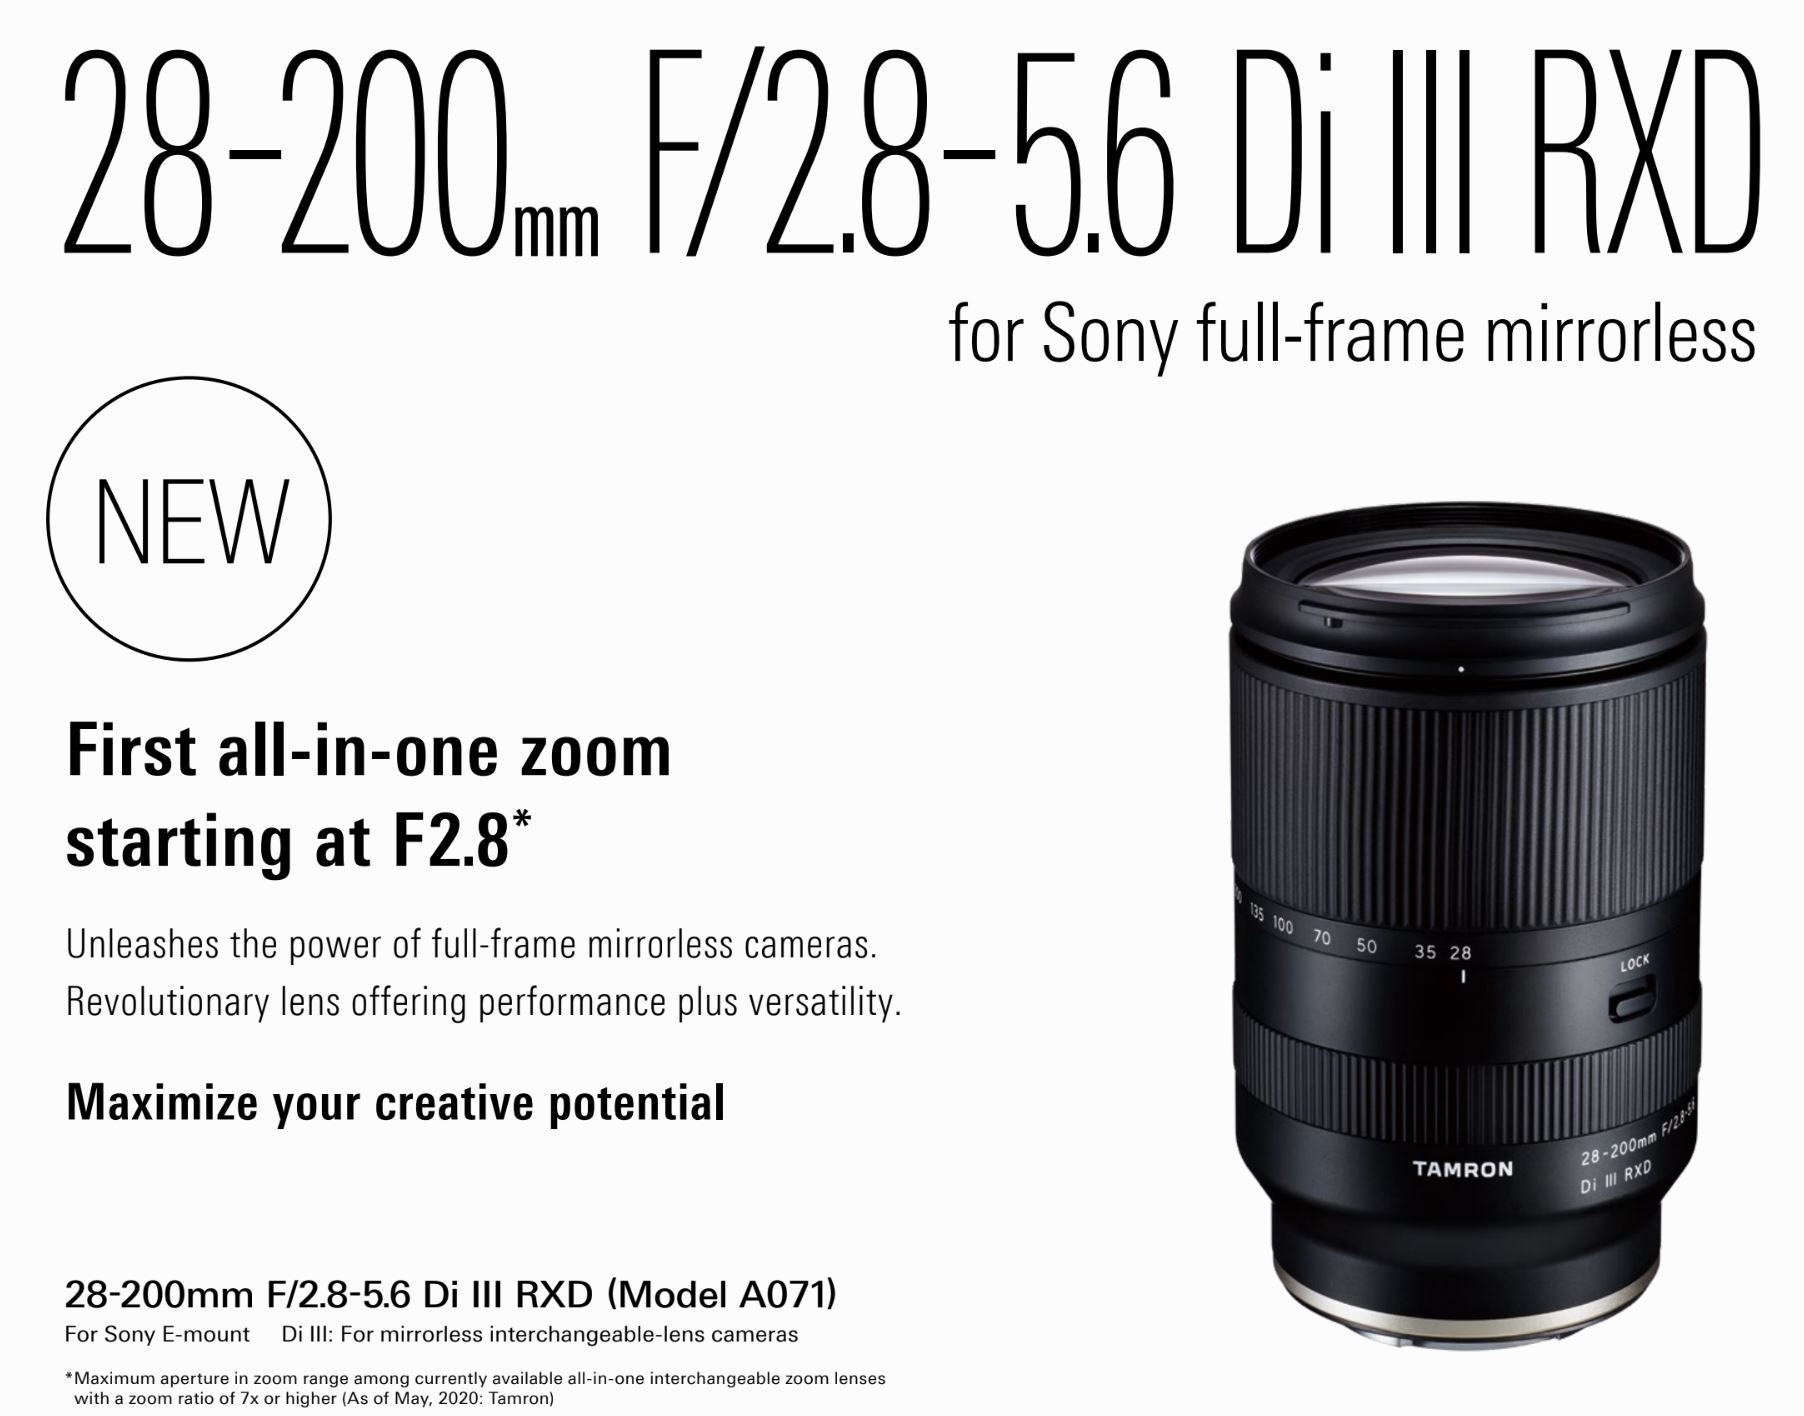 Tamron 28-200mm f/2.8-5.6 Di III RXD Lens Features & Specs Leaked ...